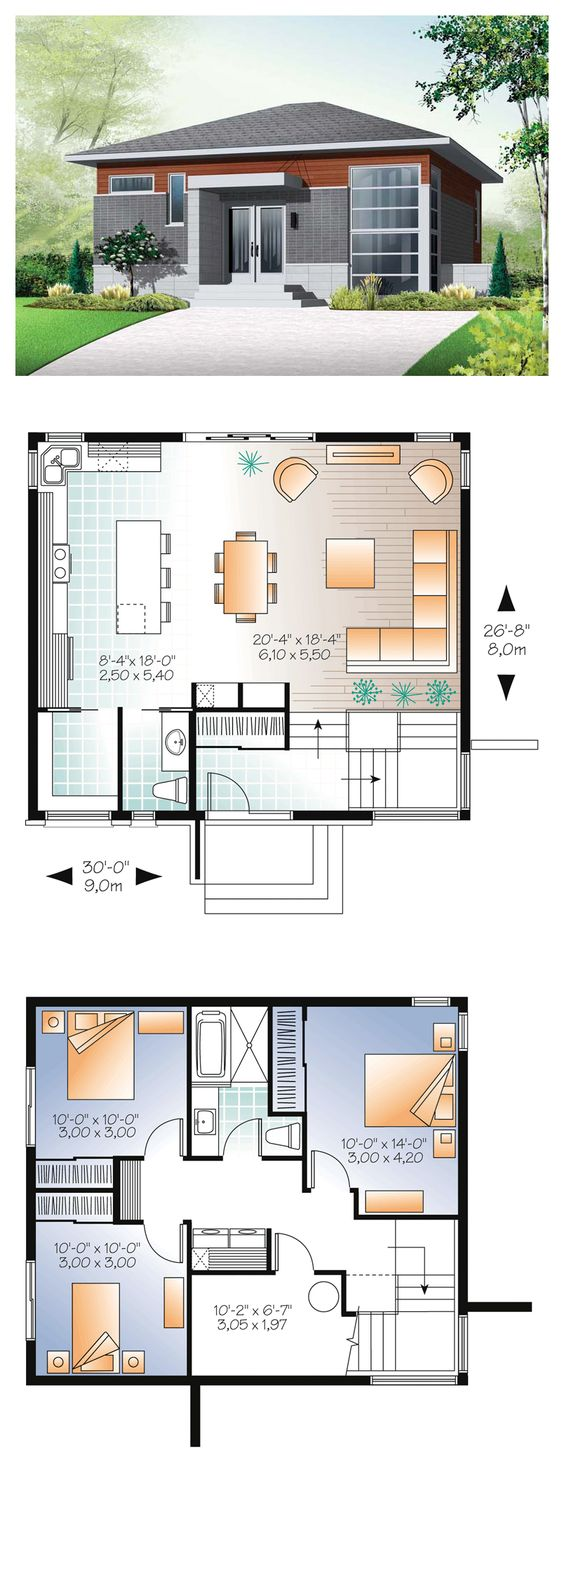 Contemporary modern house plan 76298 kitchens with for Half bath floor plans